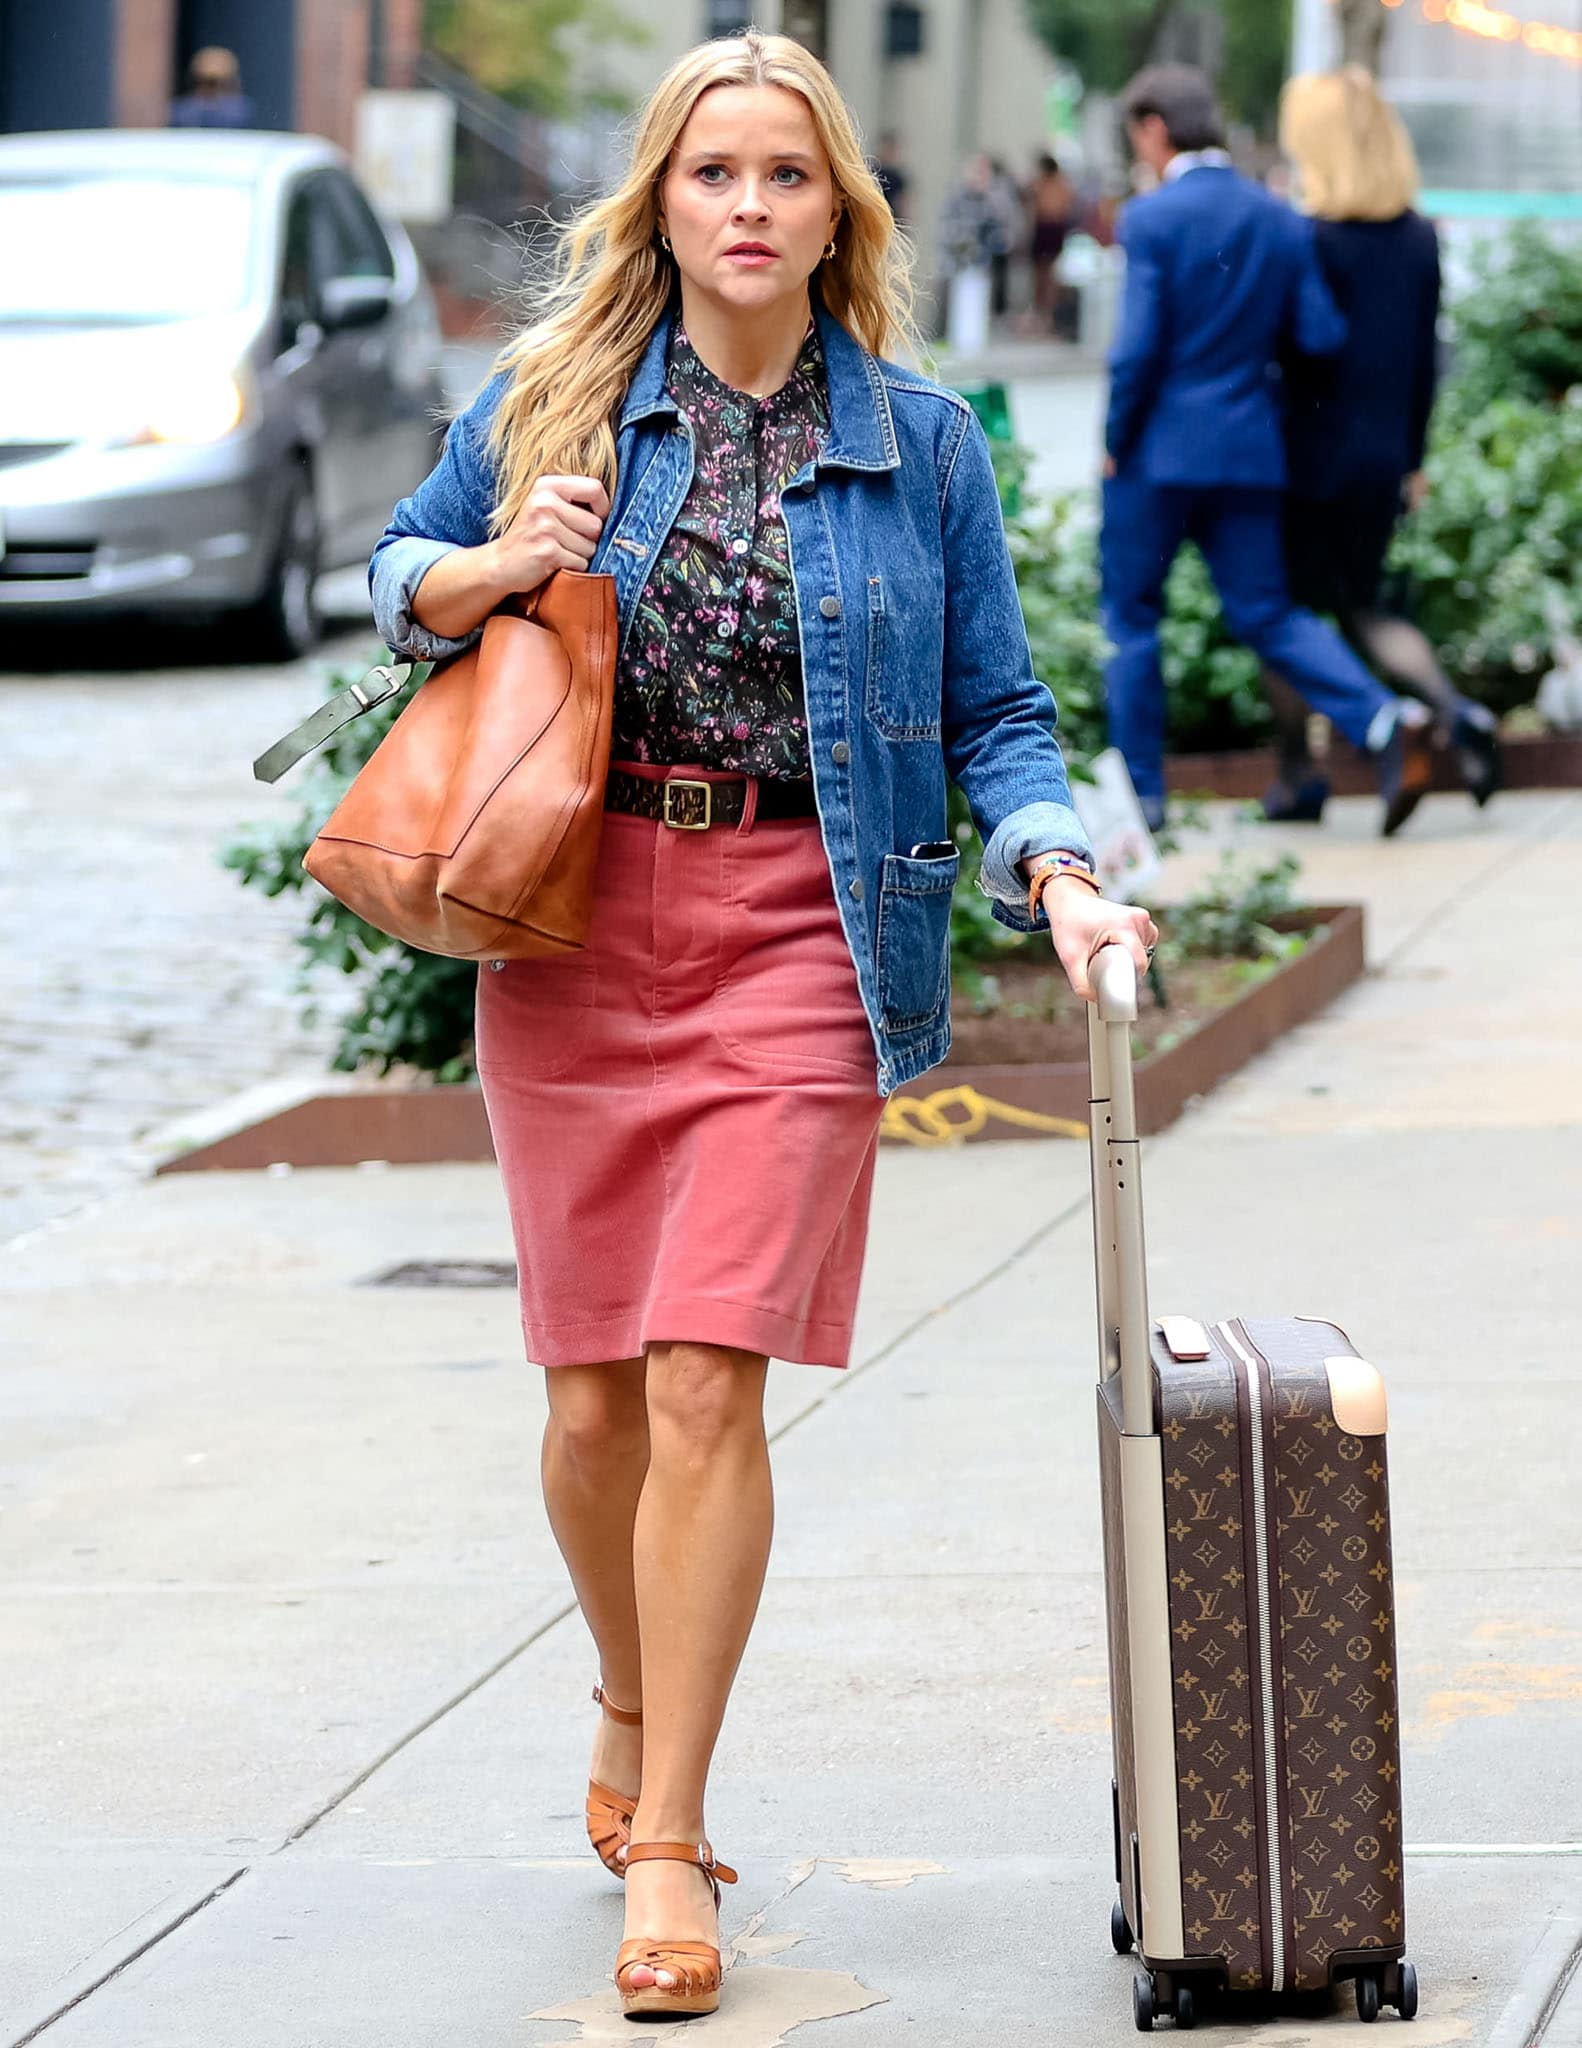 Reese Witherspoon wears a similar look with a floral shirt, pink mini skirt, and a denim jacket